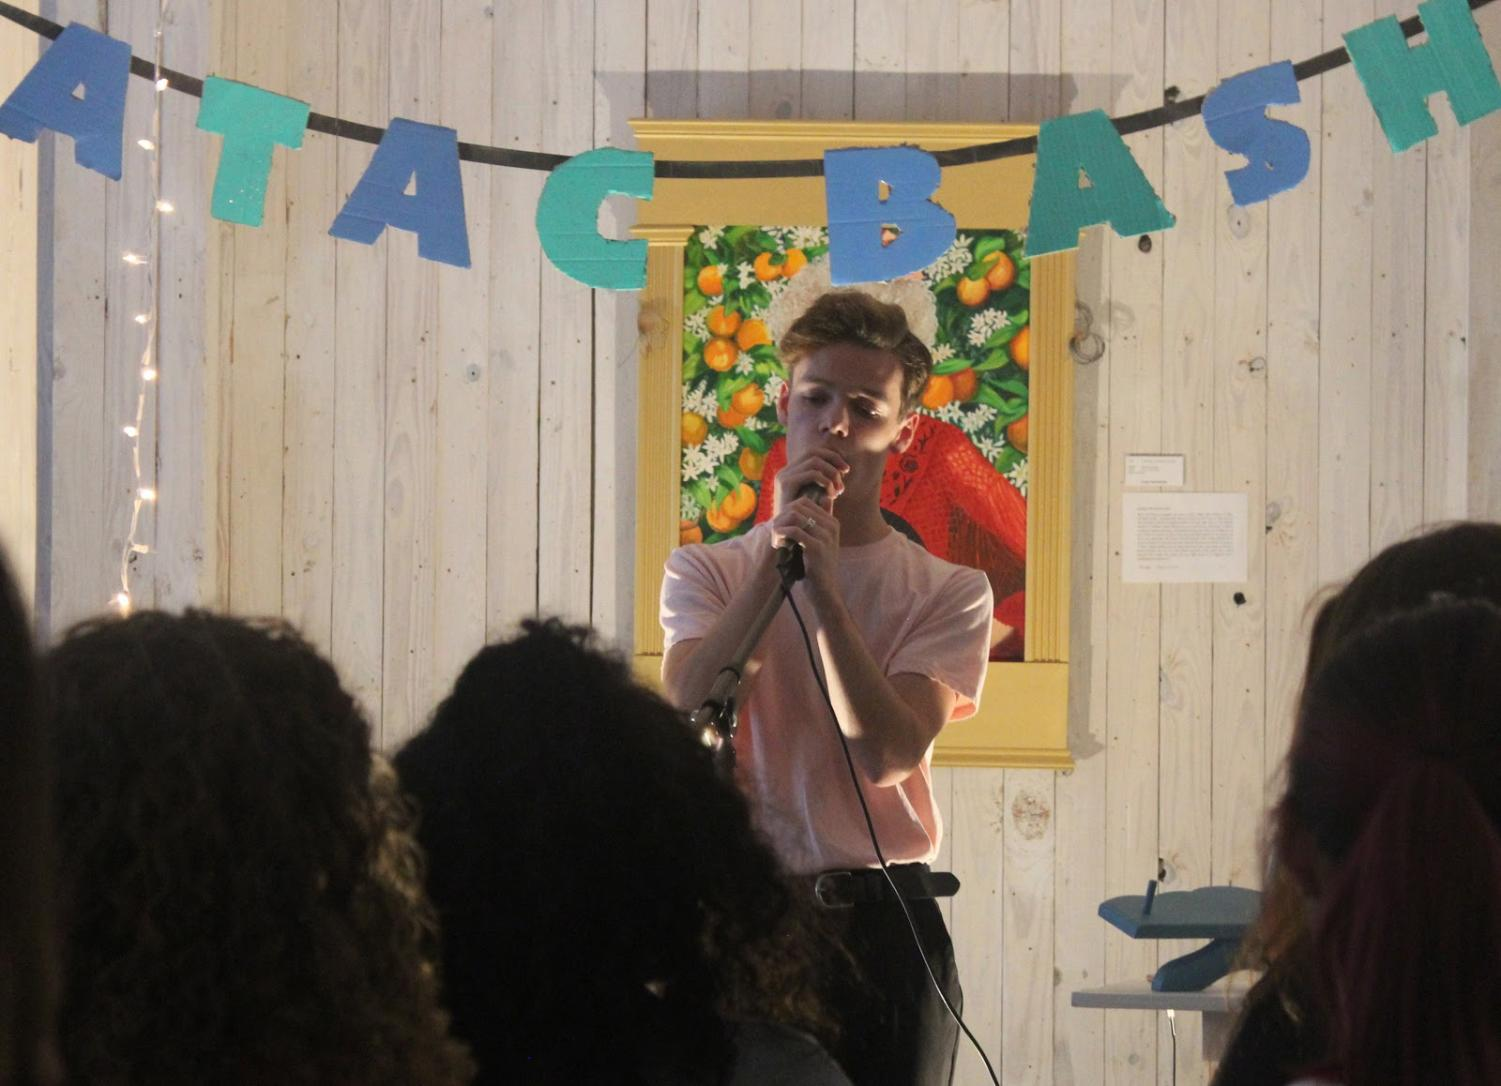 Senior Levi Reeves sings into his microphone as he performs in front of a crowd of fellow musicians at the August ATAC Bash. Performers display their musical skills at ATAC bashes and engage in an artistic community in the process.